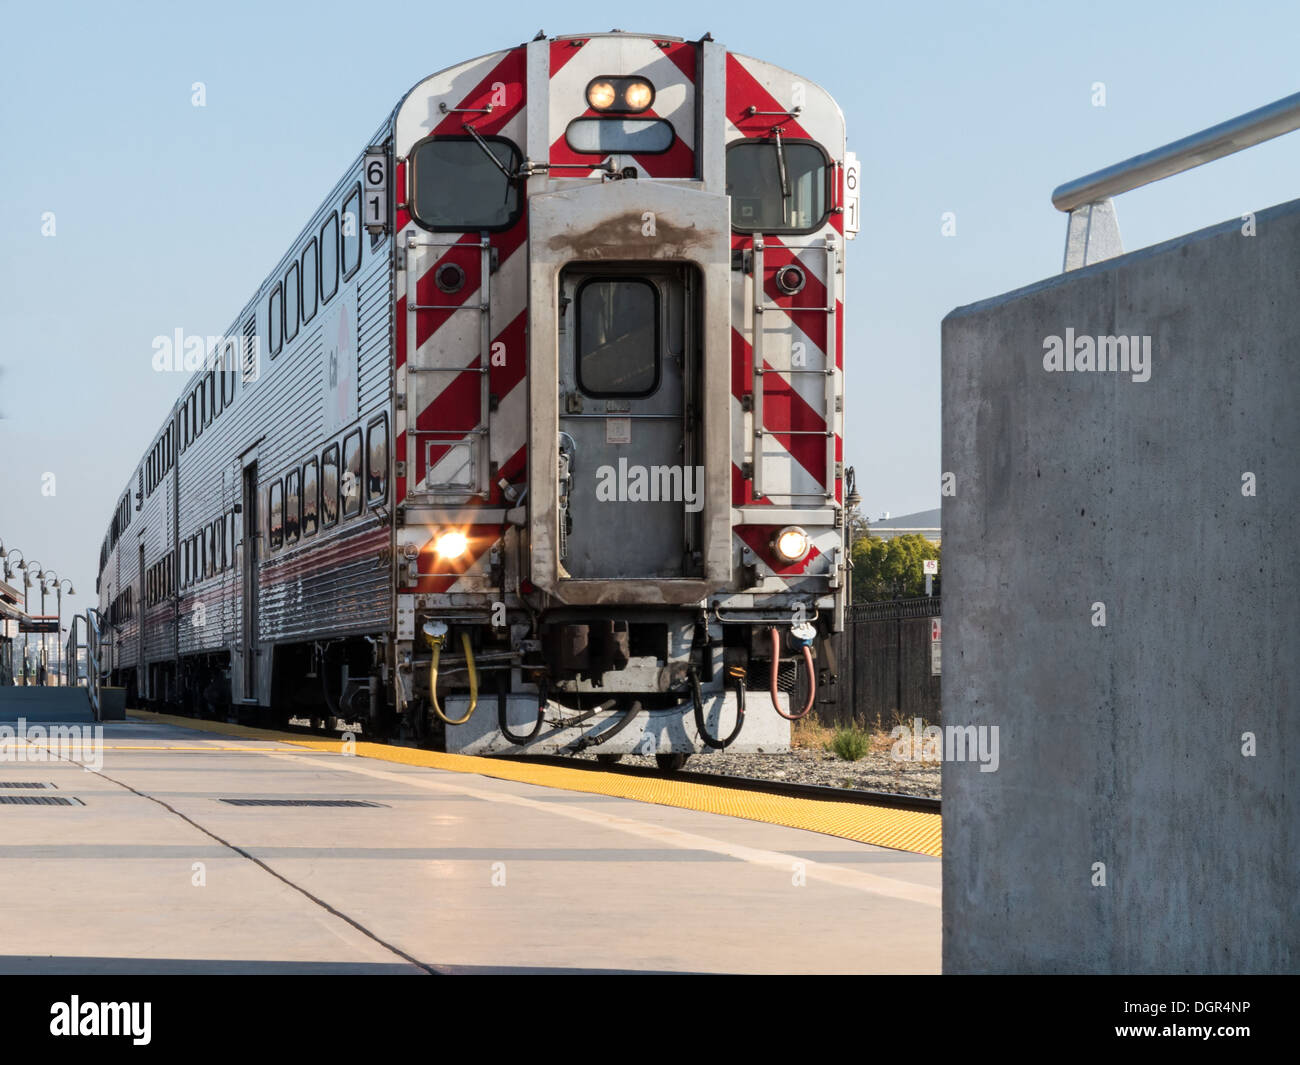 Double deck commuter train at the platform in California - Stock Image